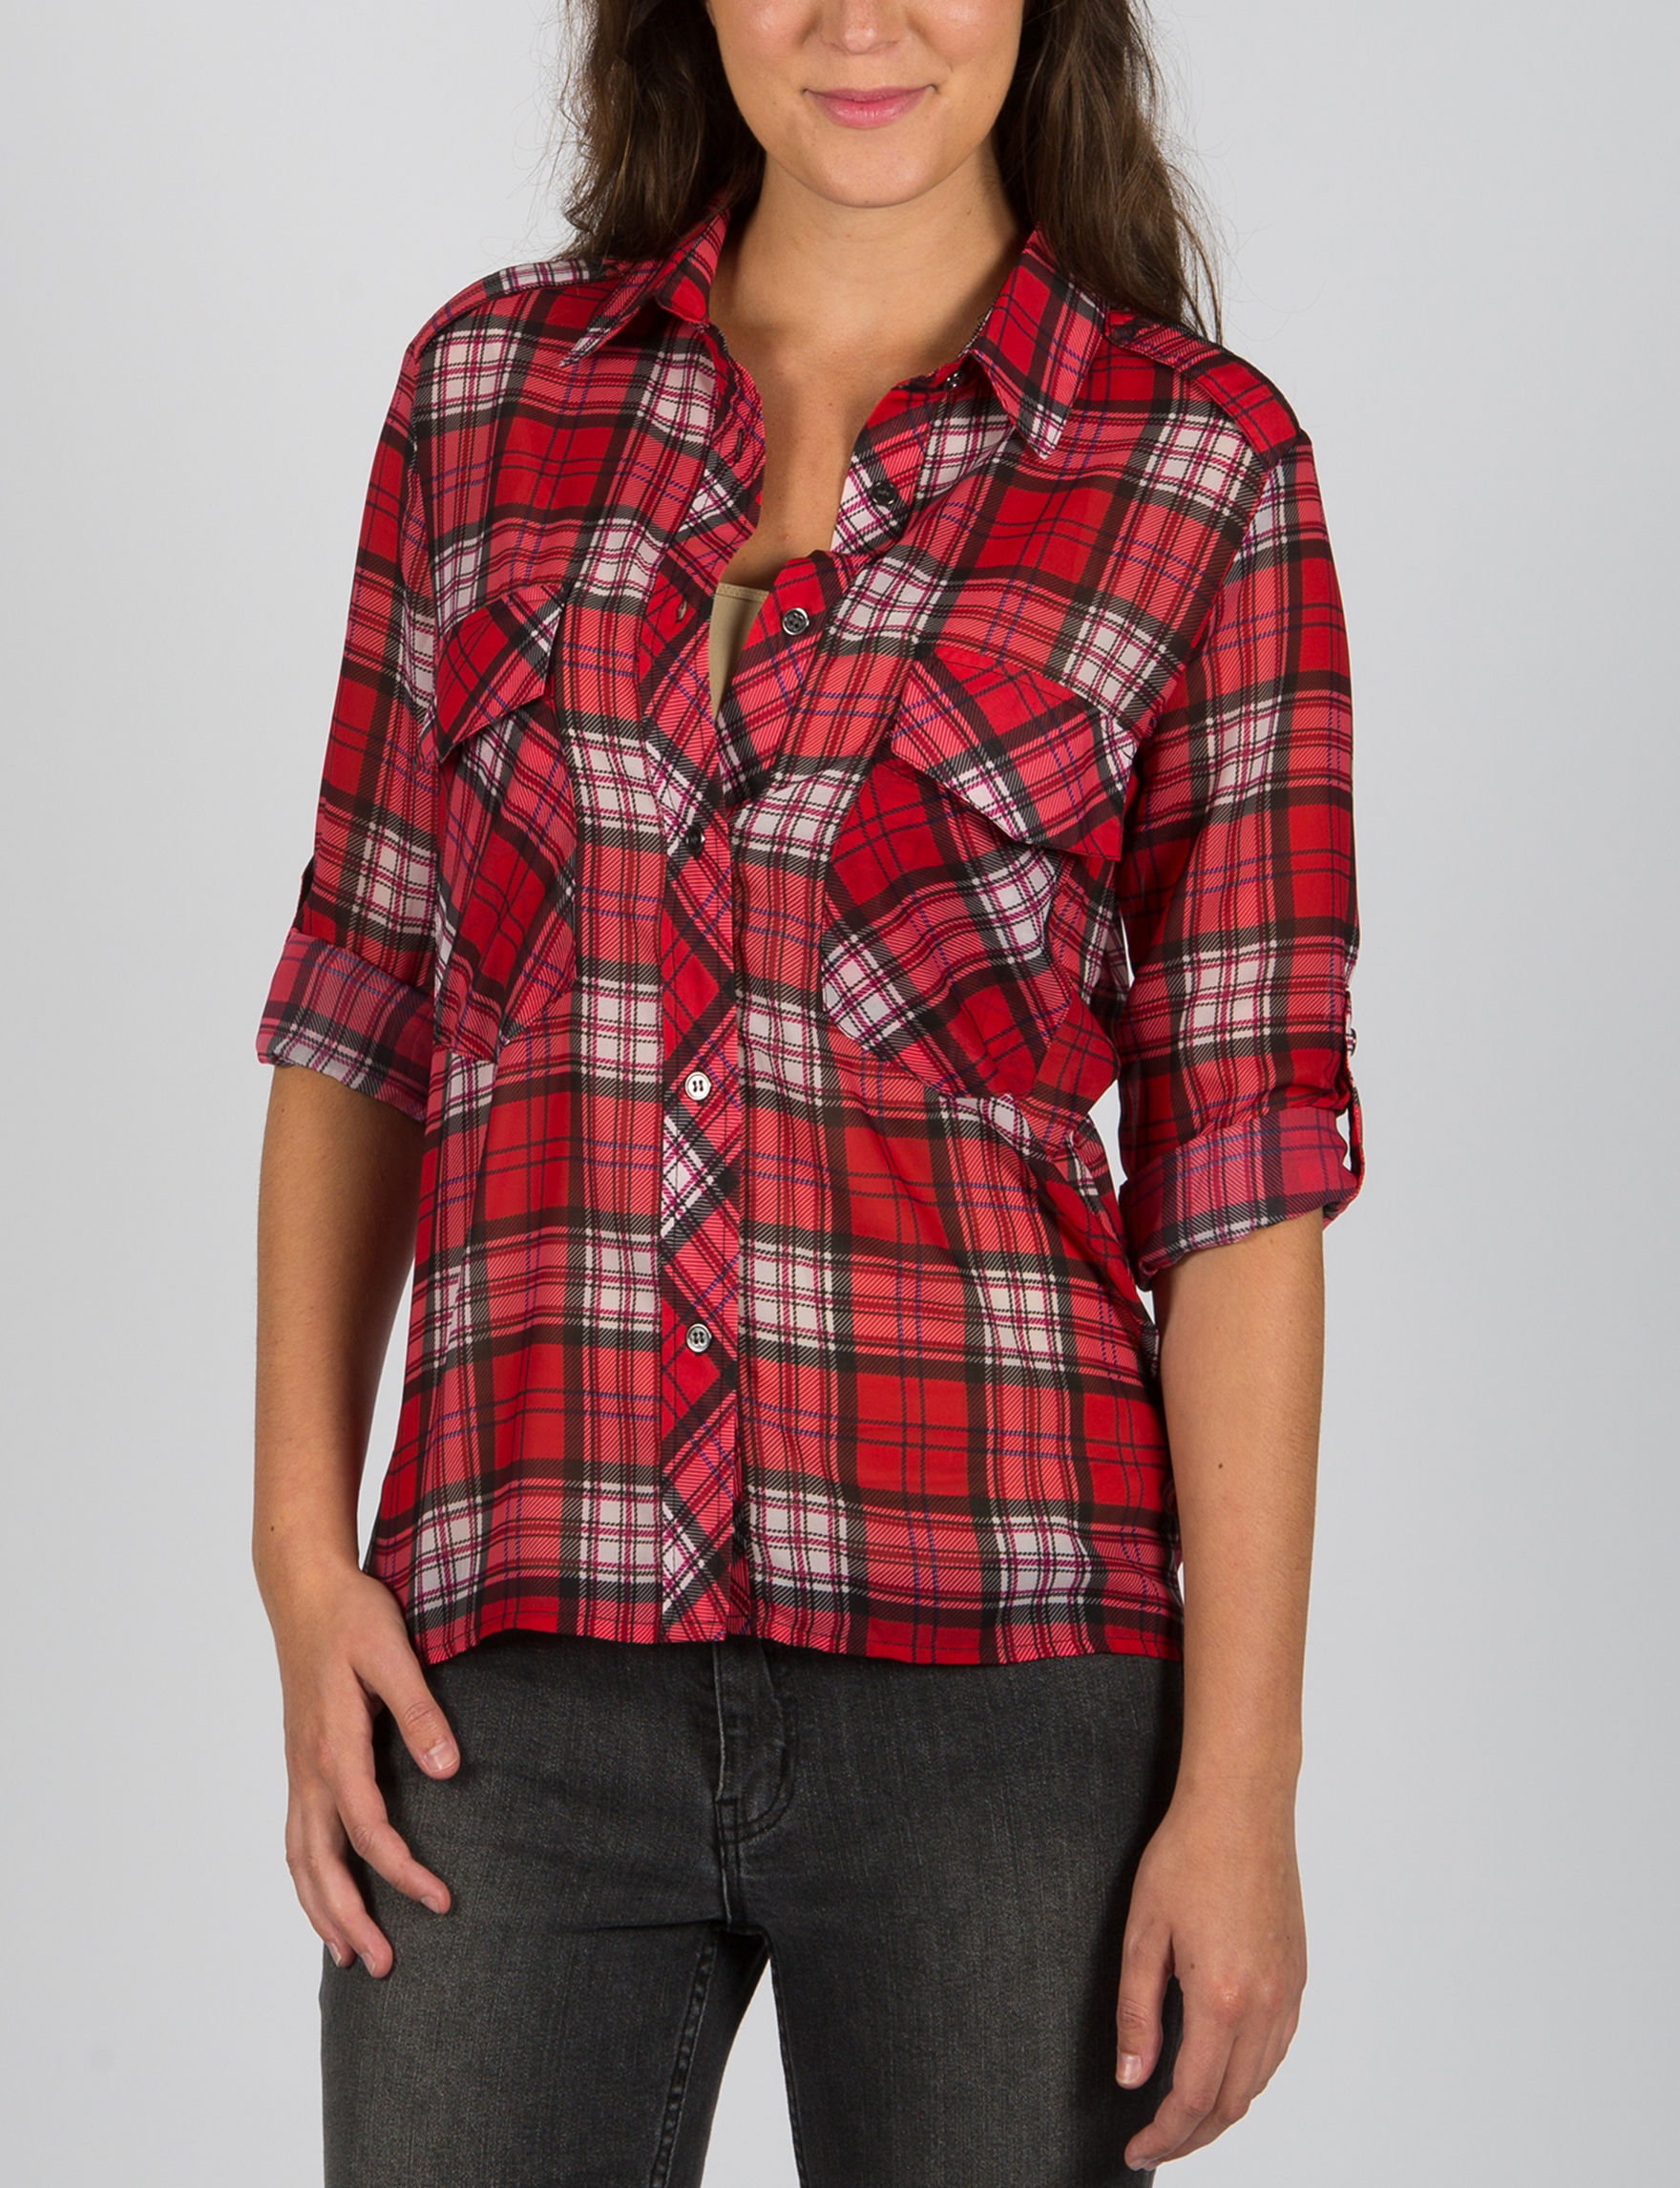 ABS by Allen Schwartz Red Plaid Shirts & Blouses